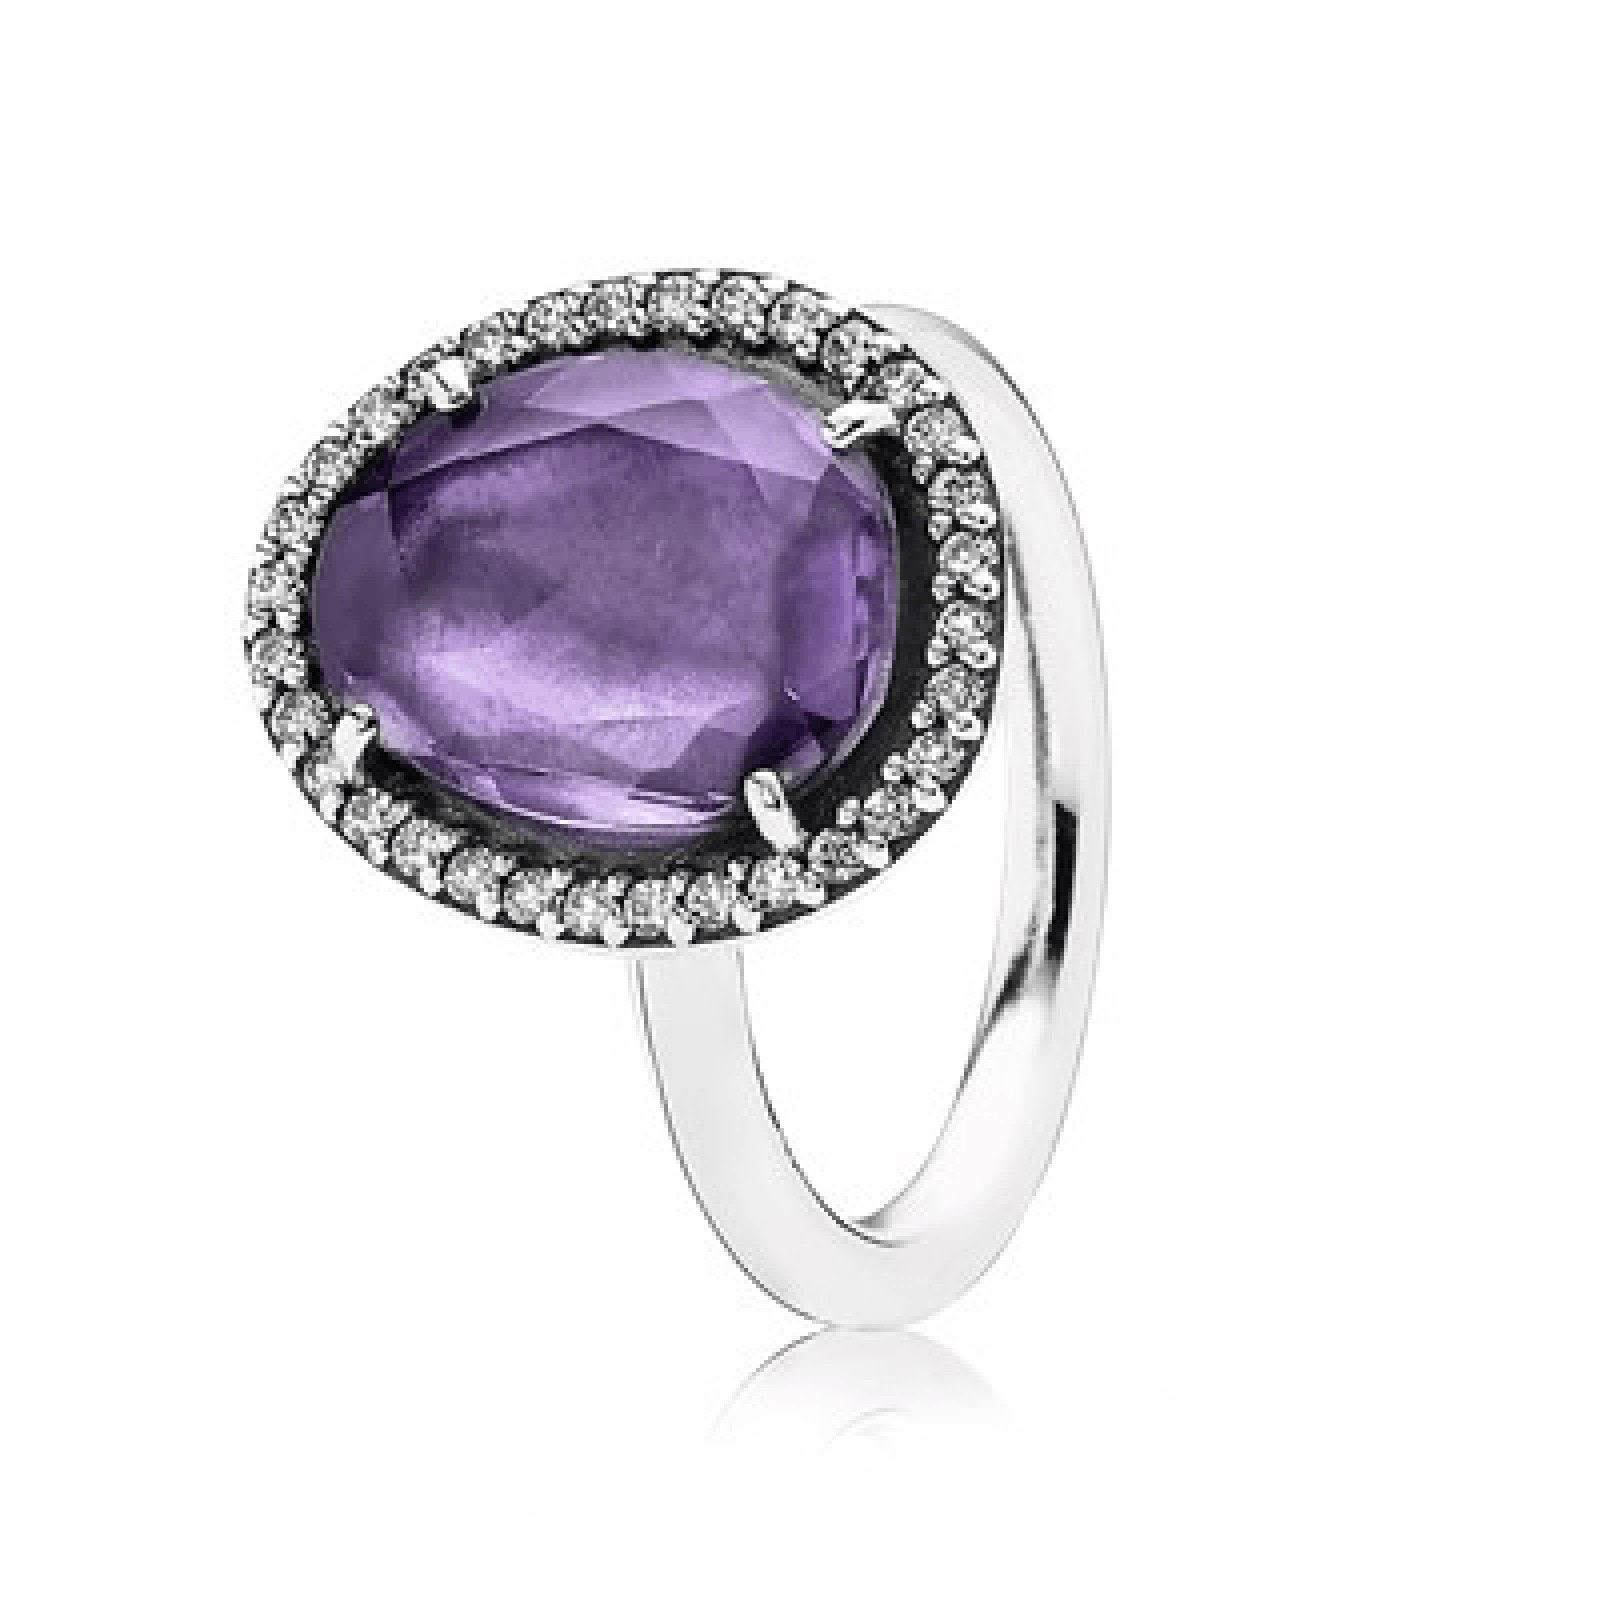 20e3f5449 Pandora Glamorous Legacy Ring in Sterling Silver Set with Purple Amethyst  and Clear CZ Rings Pandora